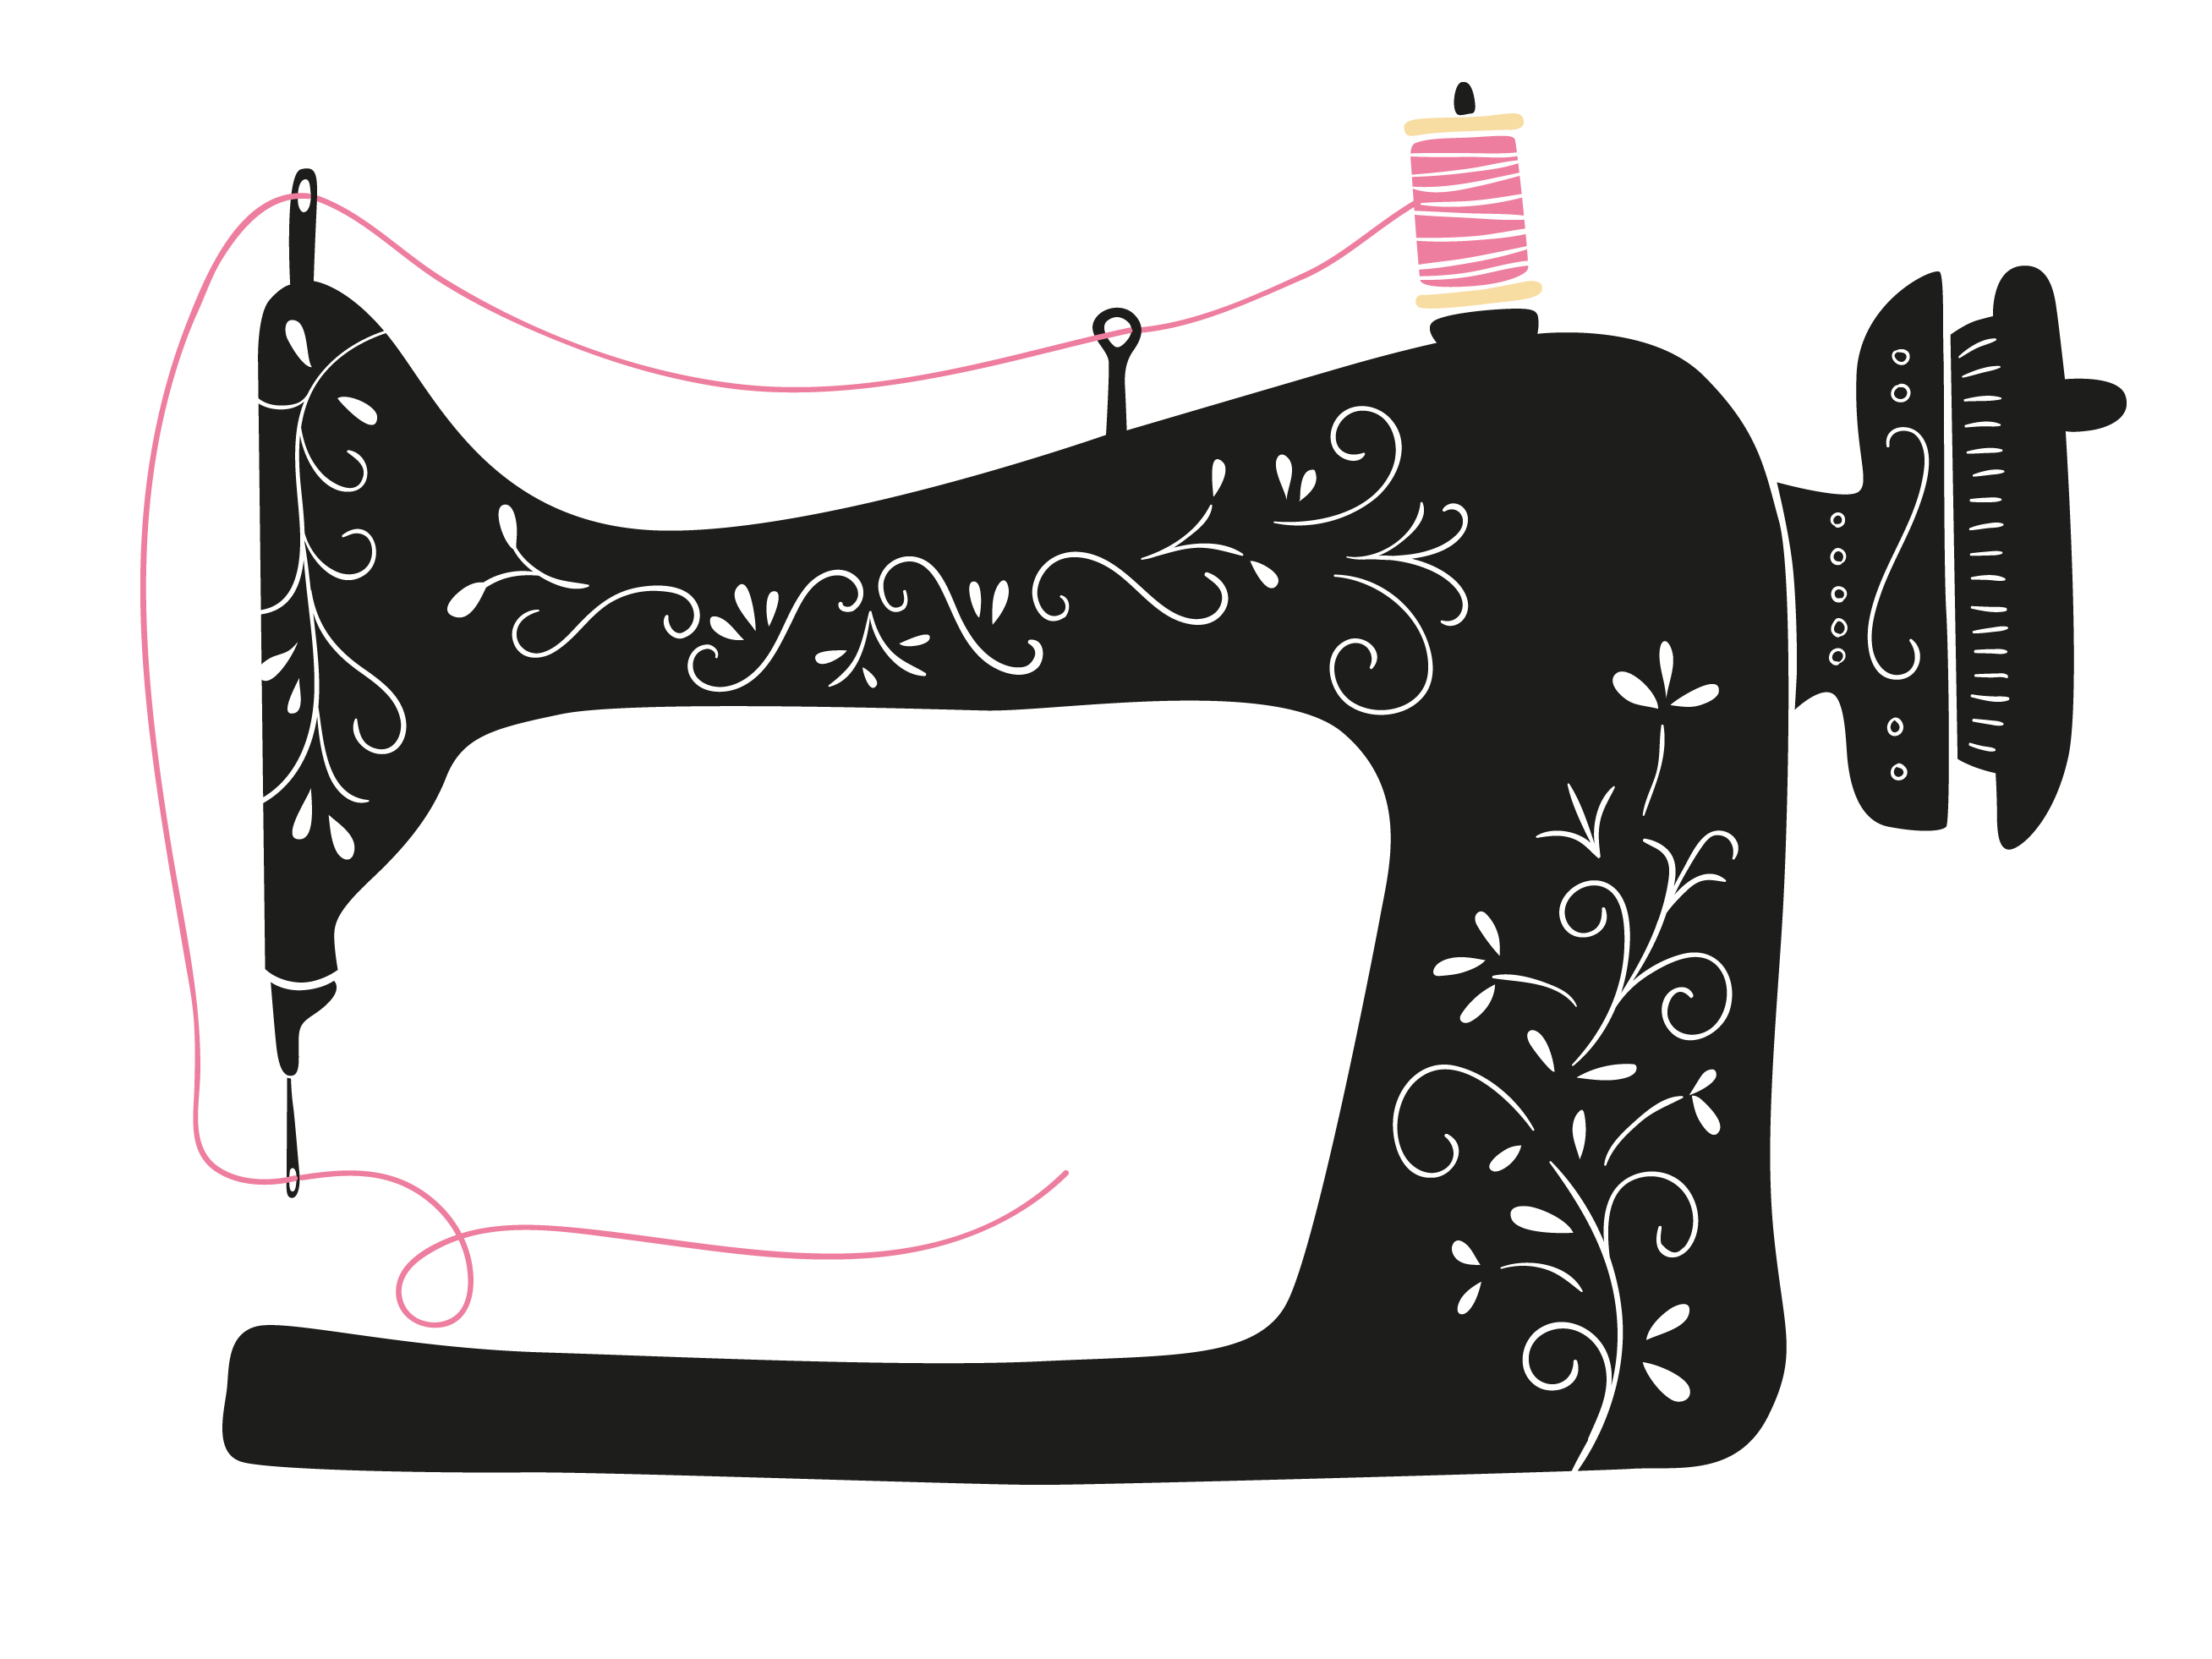 Free PNG Sewing Notions - 84812